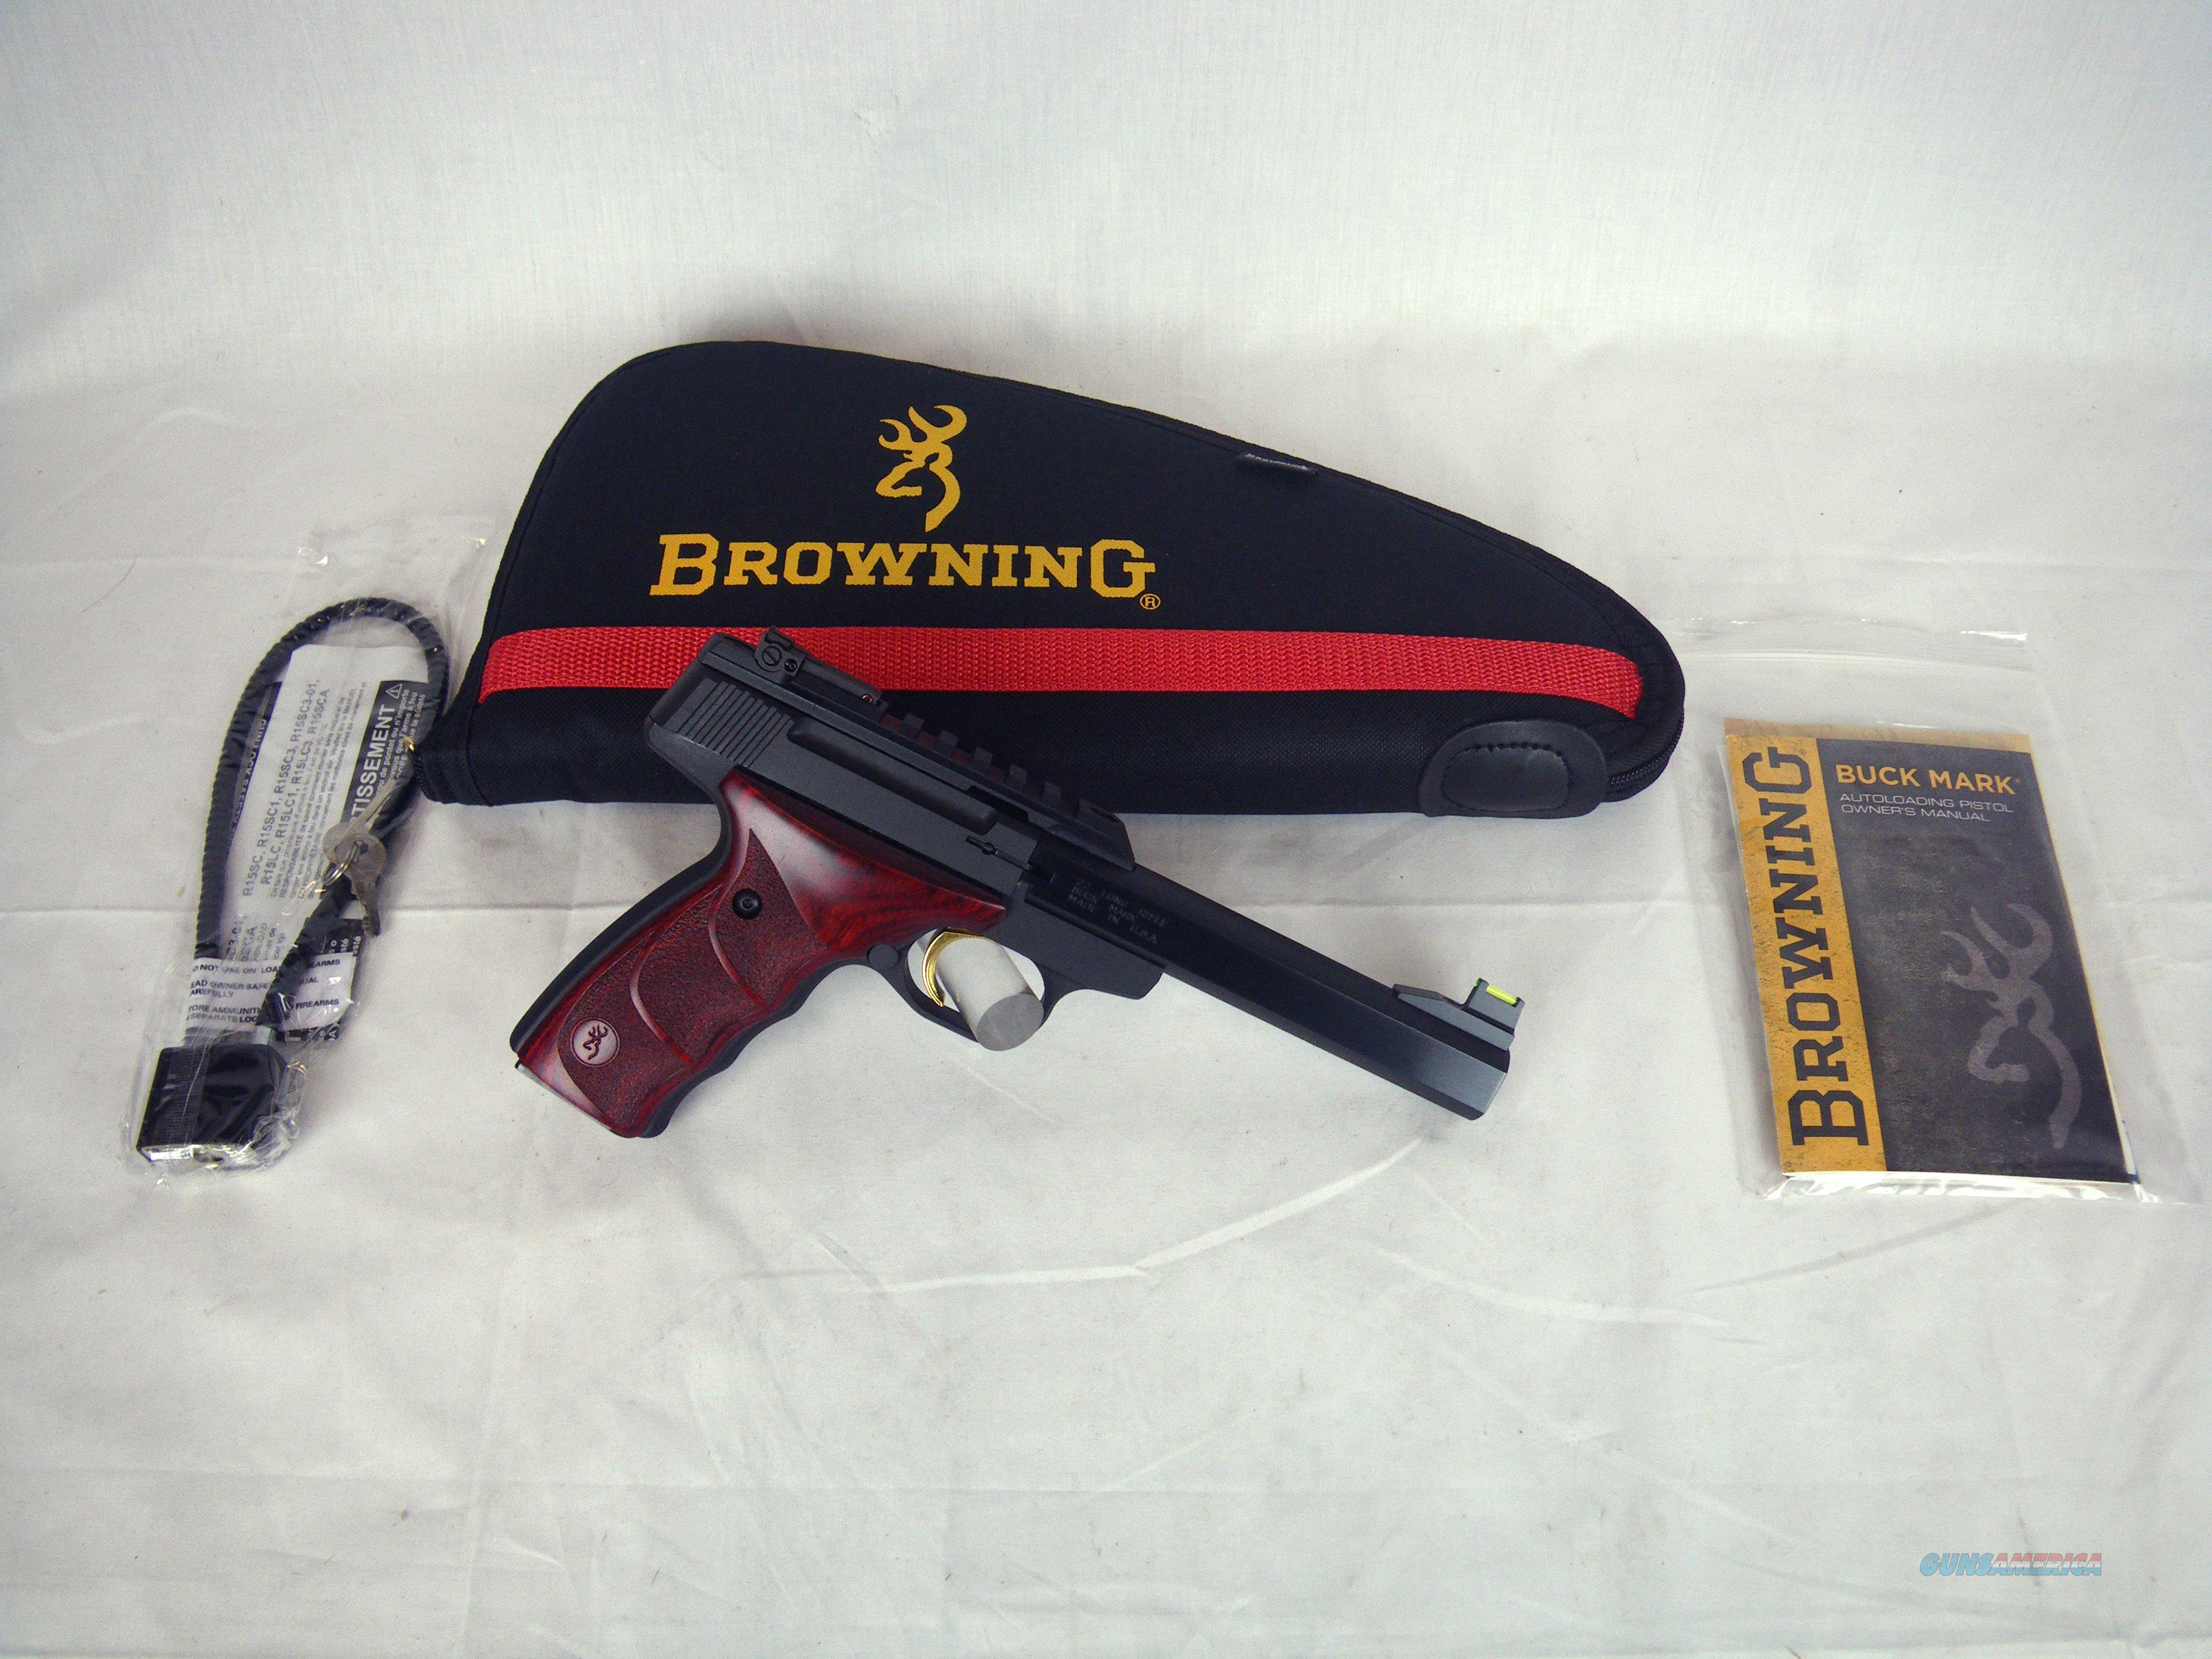 "Browning Buckmark Plus UDX Rosewood 22lr 5.5"" NEW #051533490  Guns > Pistols > Browning Pistols > Buckmark"